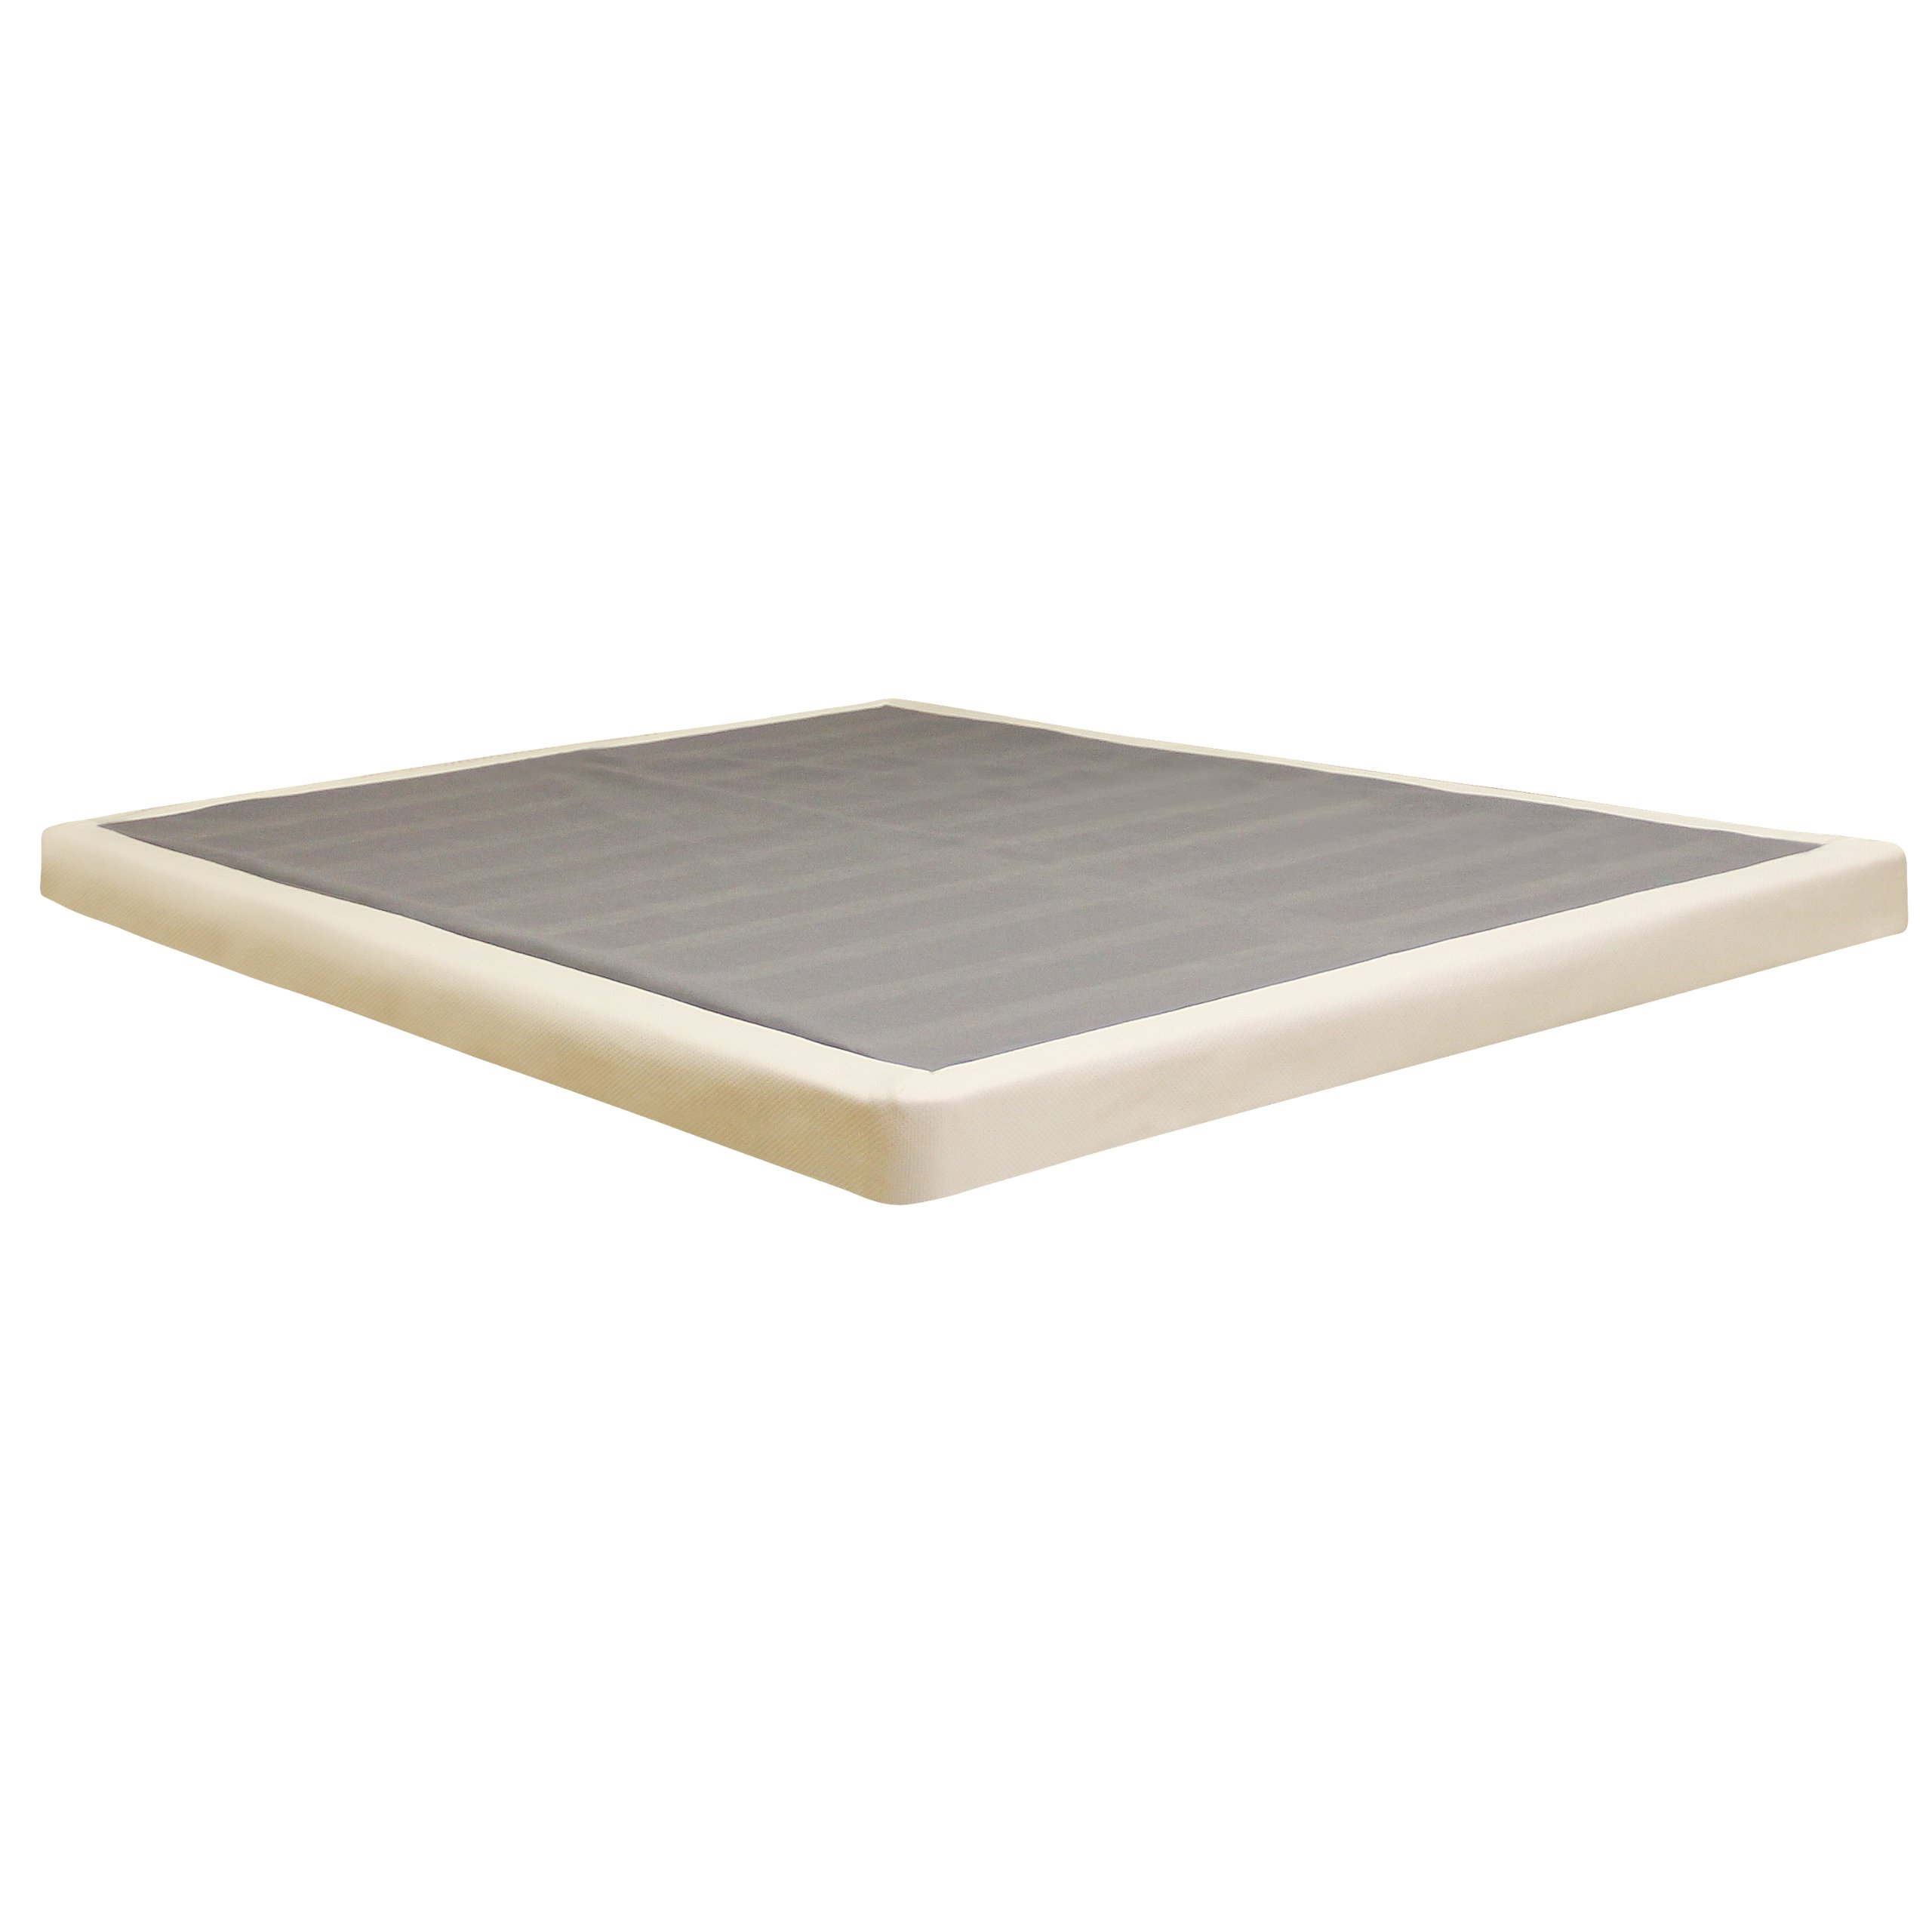 Classic brands low profile foundation box spring 4 inch Low profile box spring